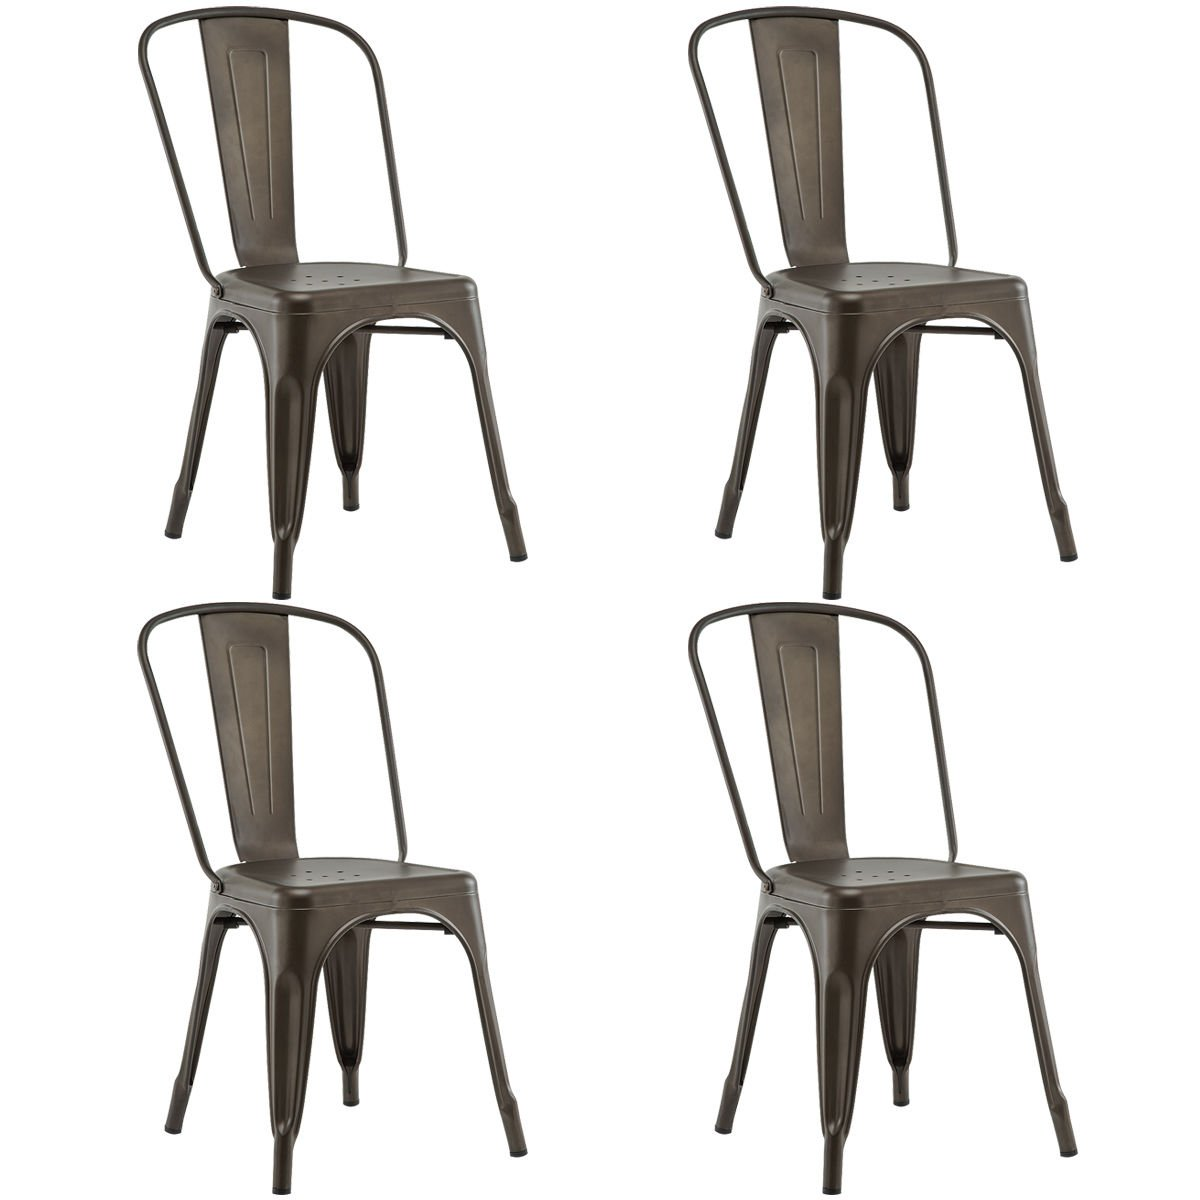 COSTWAY 4 Set of 4 Tolix Style Metal Stackable Industrial Vintage Chic High Back Indoor Outdoor Dining Bistro Caf Kitchen Side Chair Copper